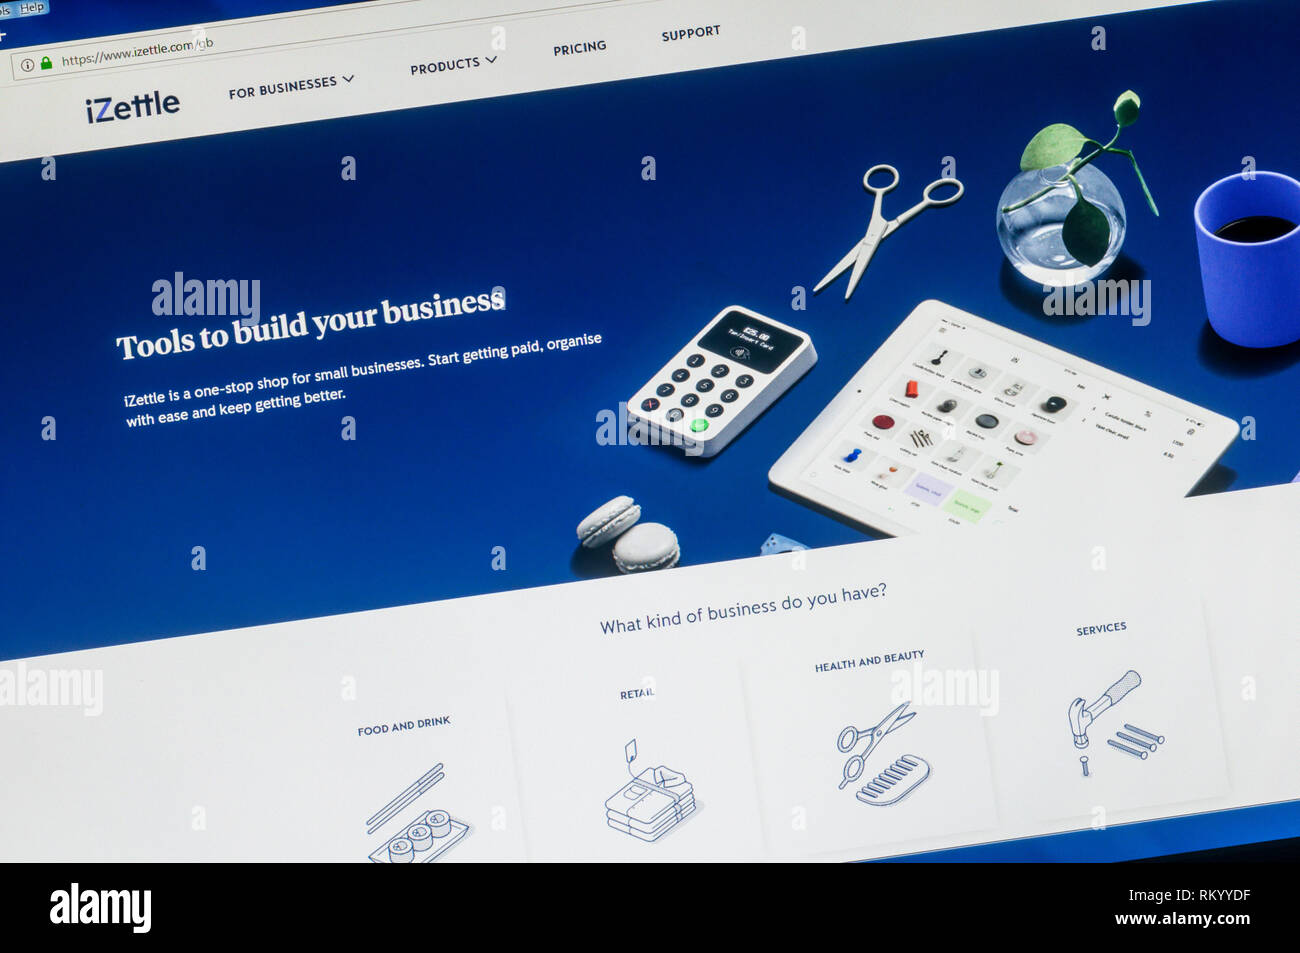 Homepage of the website of iZettle the Swedish financial technology company. - Stock Image